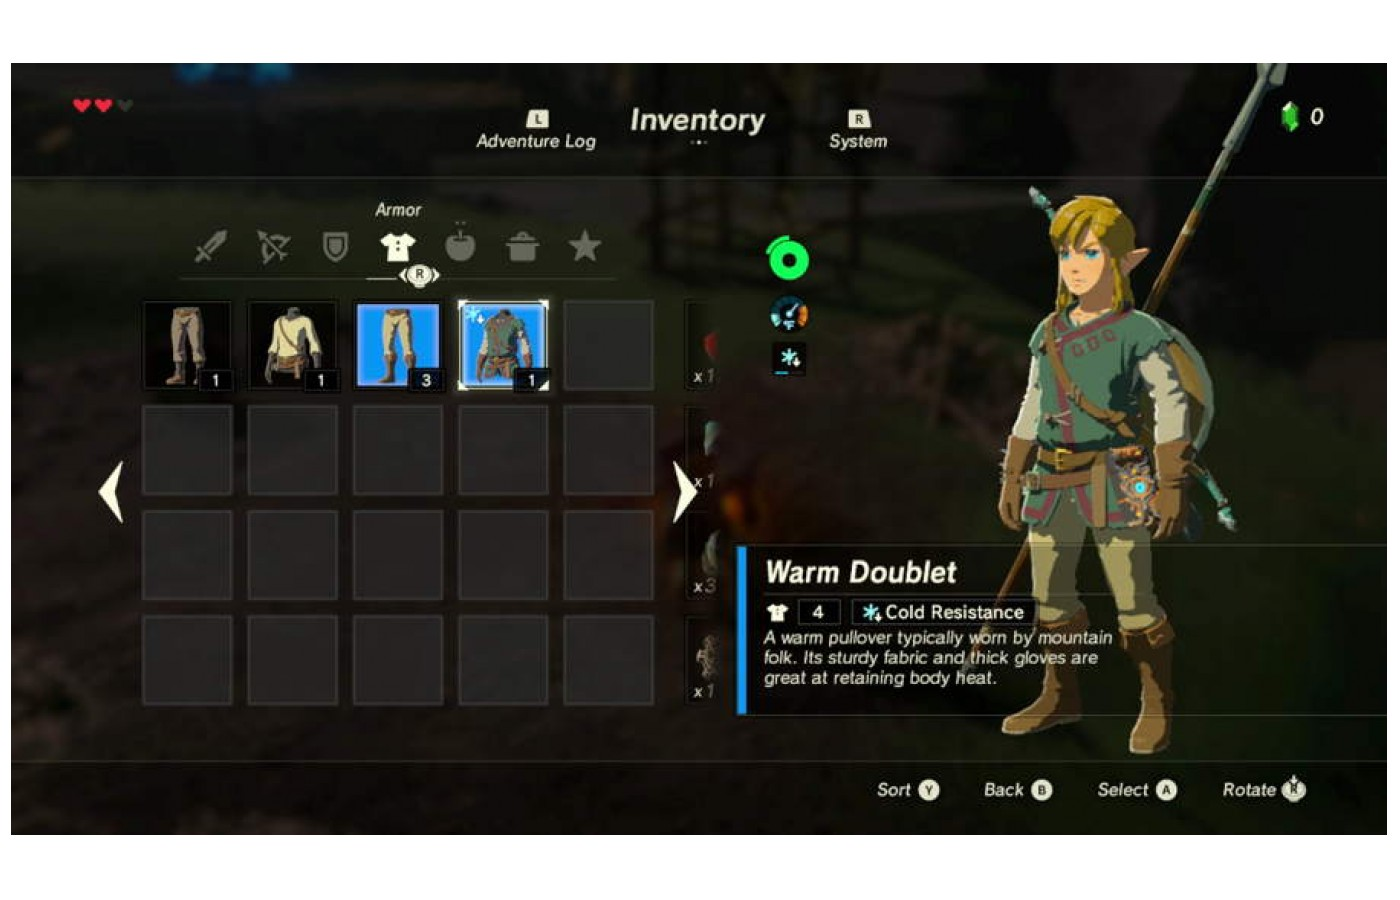 Collect all he different outfits in order to more easily traverse Hylia.